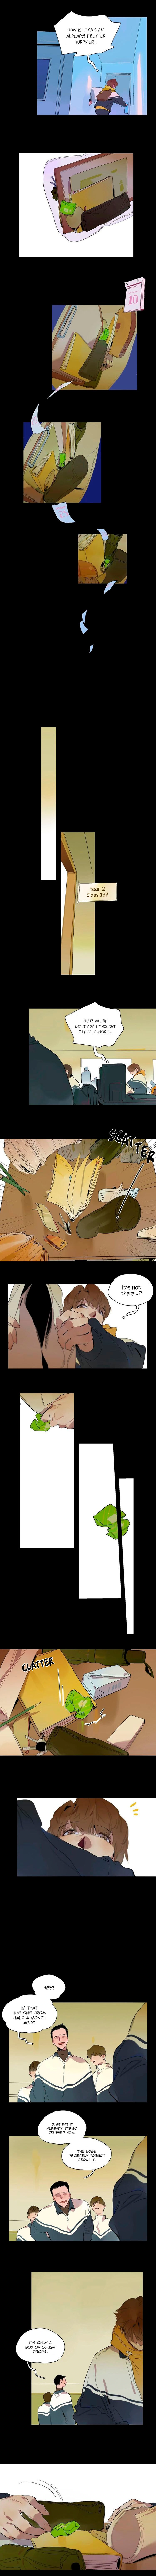 Asterism - chapter 12 - #3